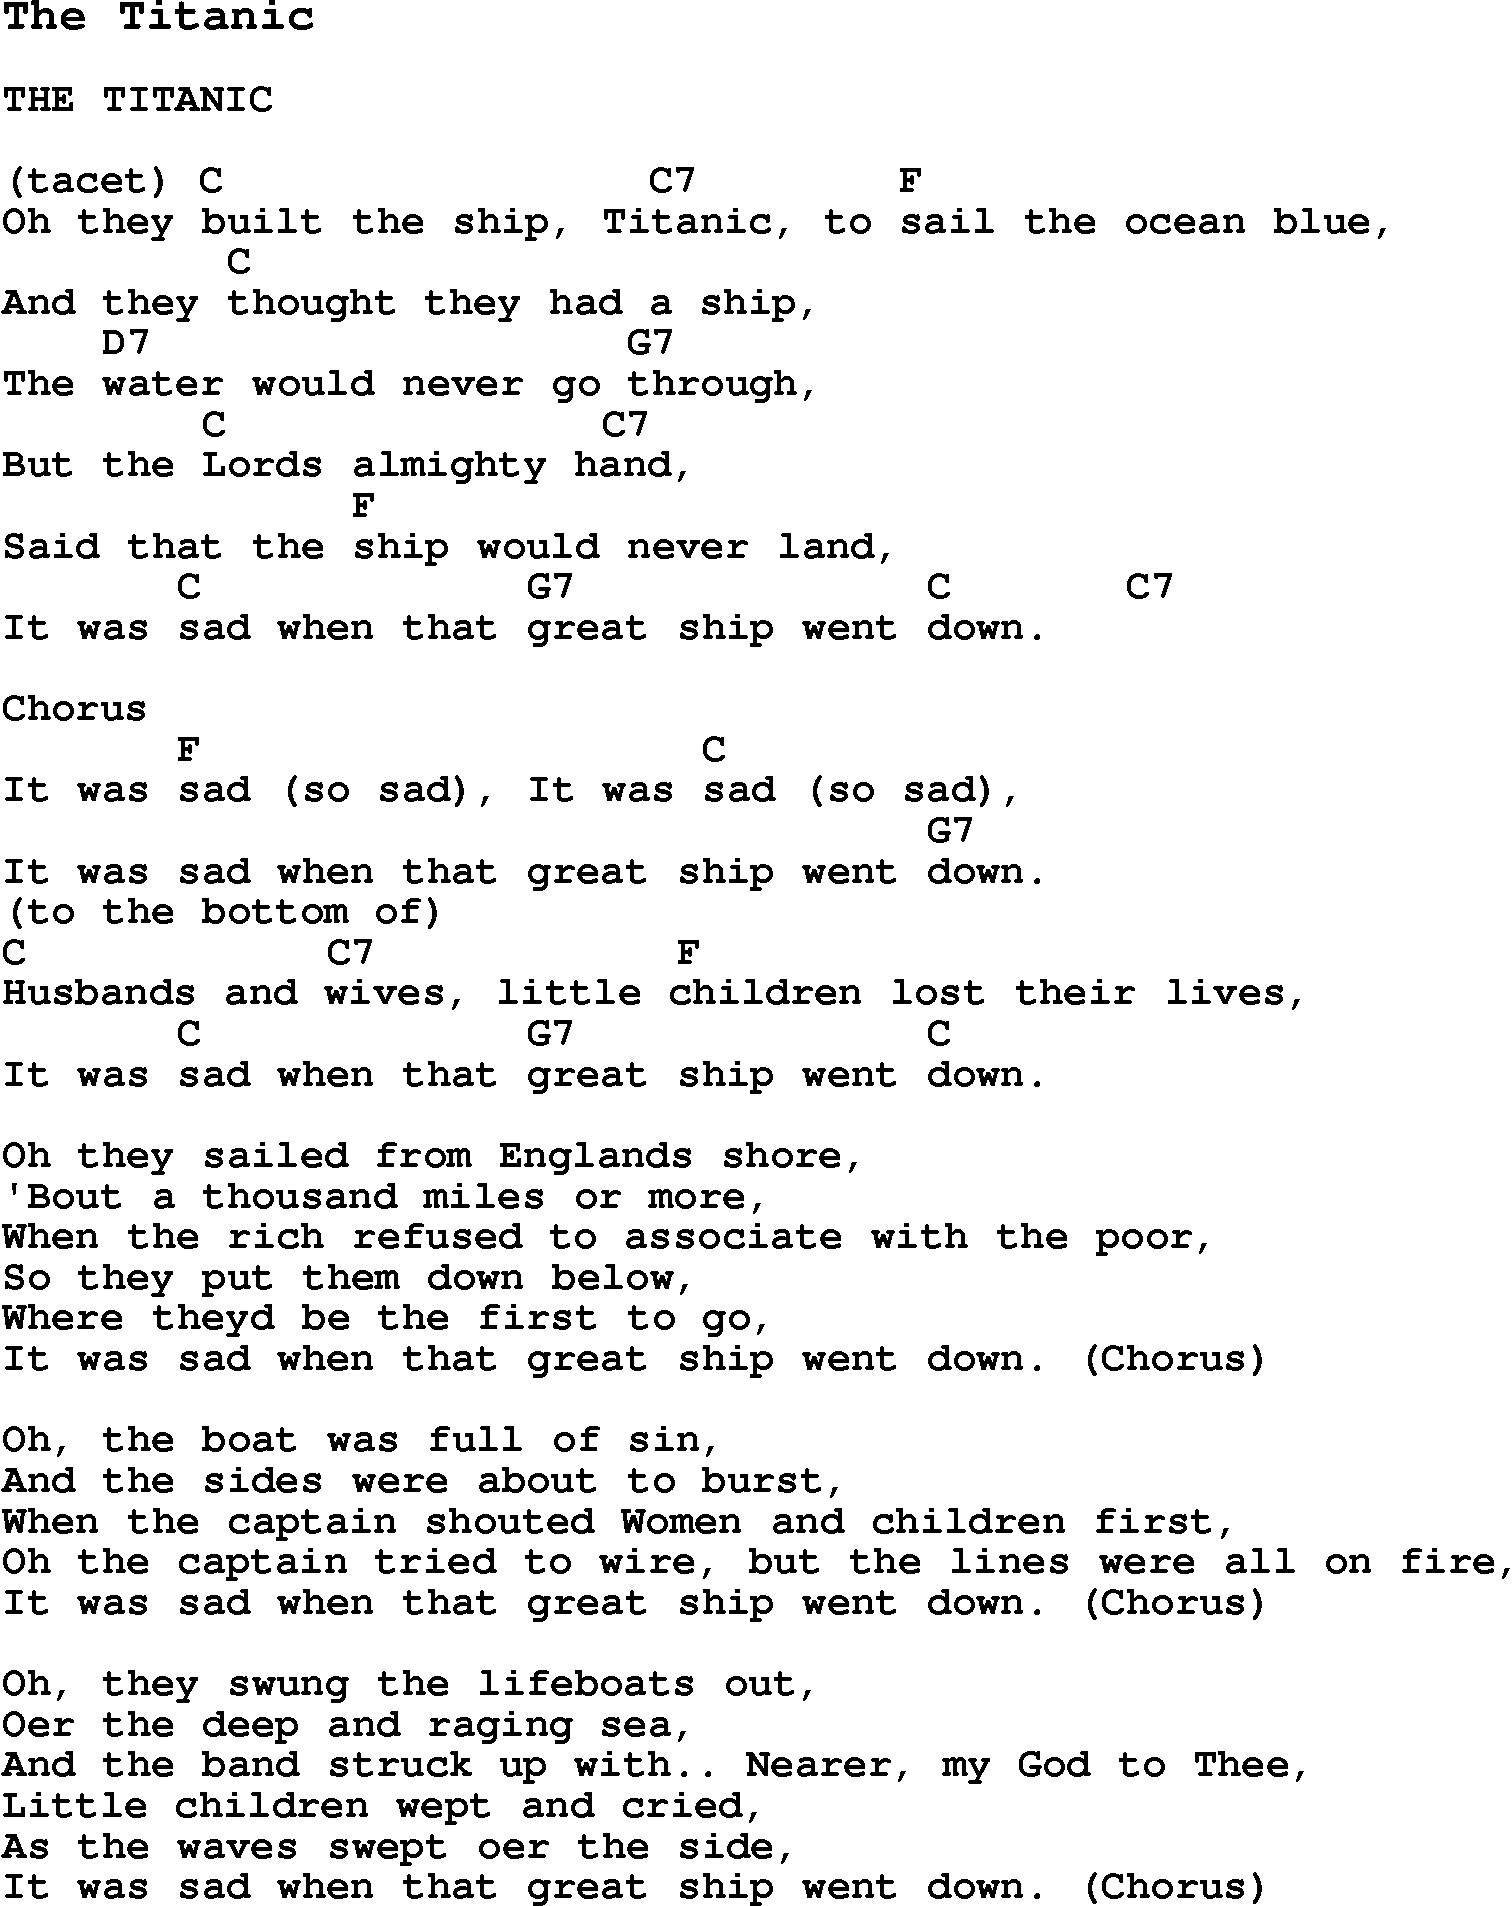 Summer camp song the titanic with lyrics and chords for ukulele summer camp song the titanic with lyrics and chords for ukulele guitar hexwebz Images